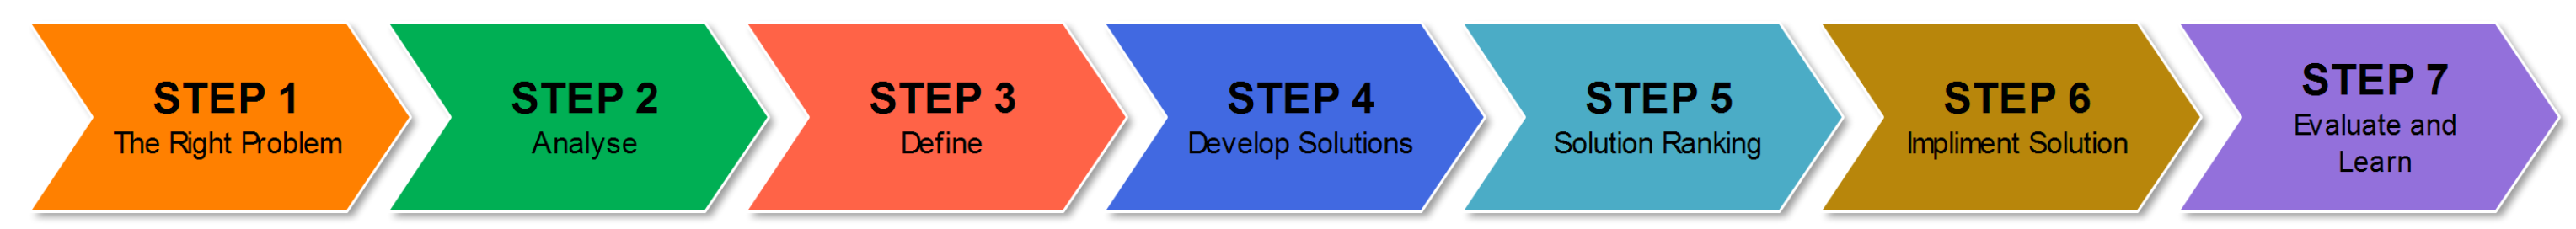 seven steps of problem solving One problem you are very likely to face at some point is a lack of motivation  motivation is goal oriented,  seven steps to solving any problem whatever your .